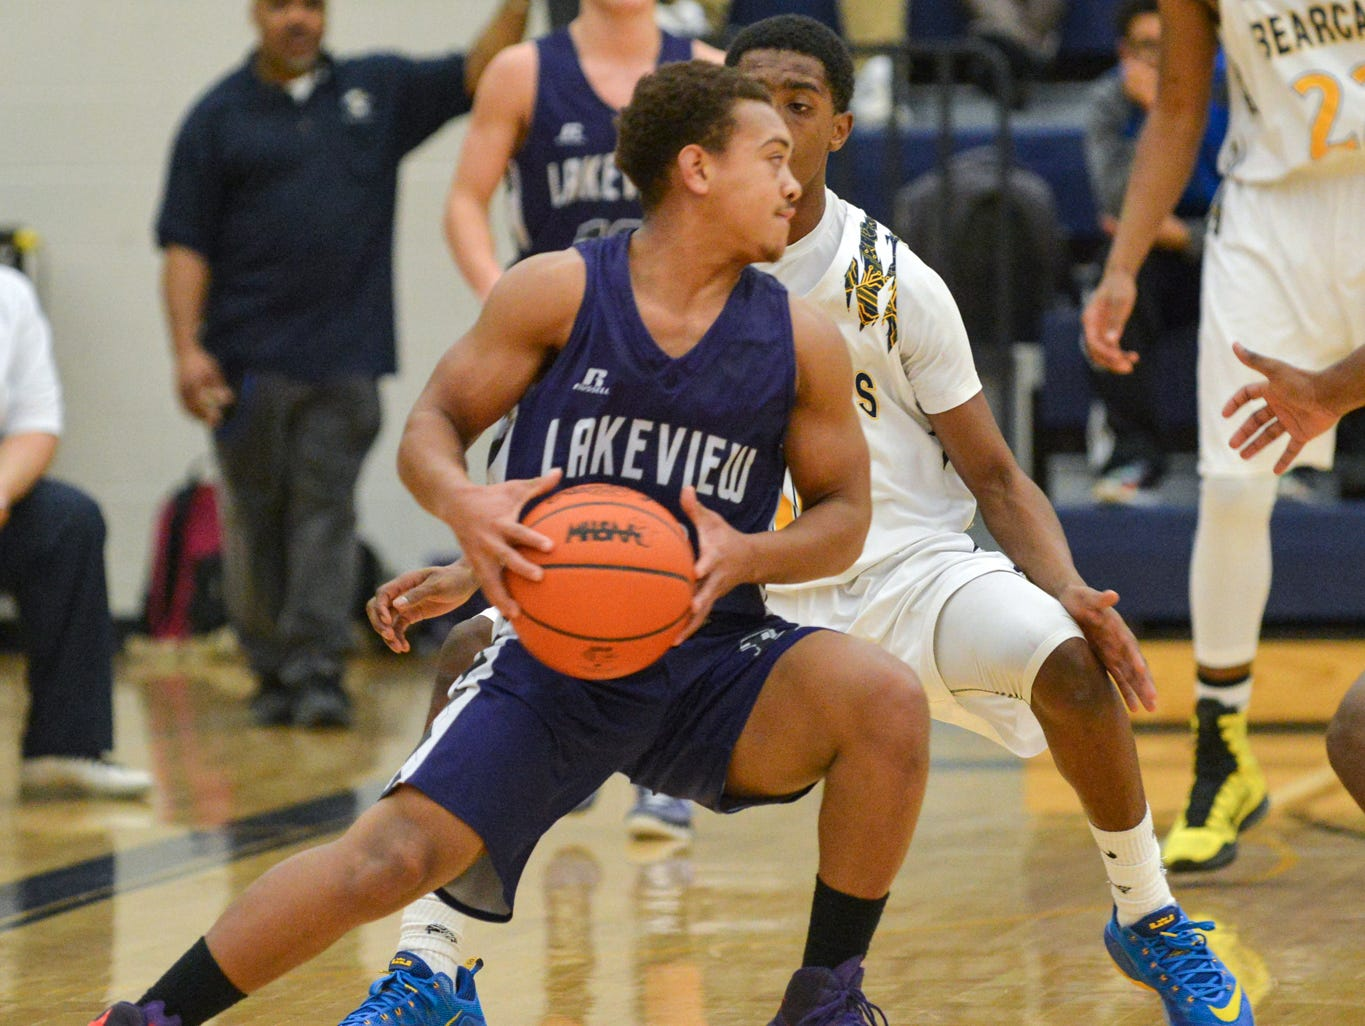 Lakeview's CJ Foster works to drive through Central defenders Thursday night.